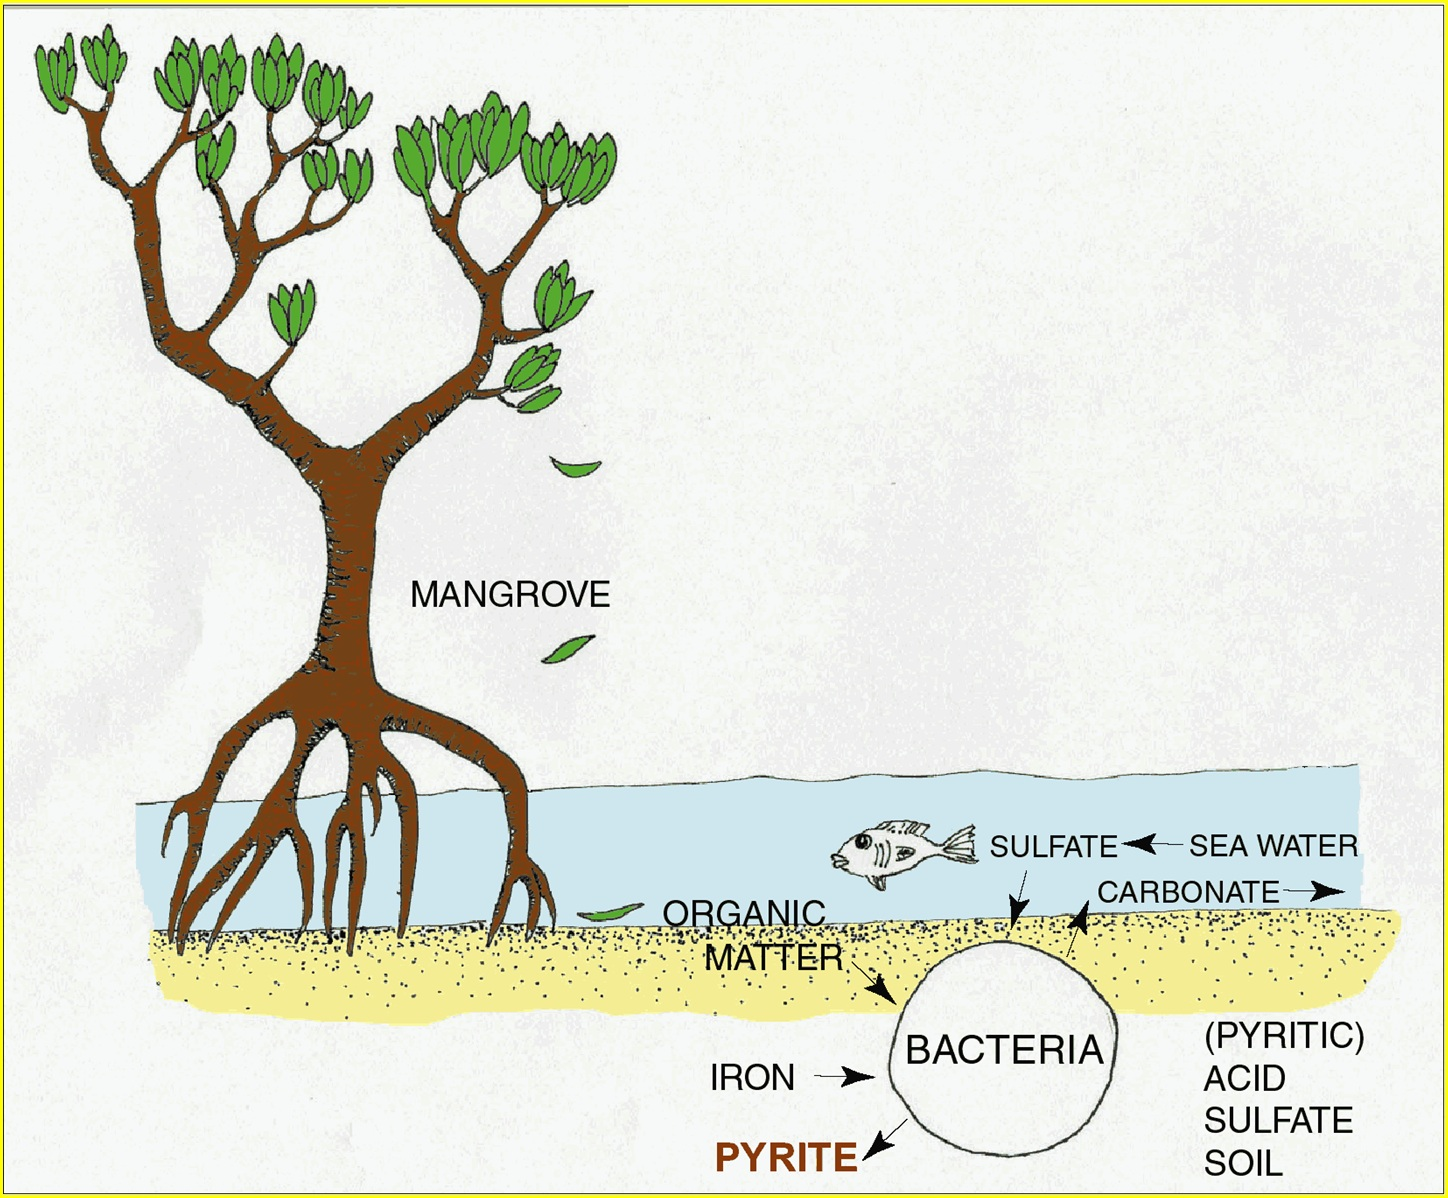 Acid sulfate soils explained environment land and water for Explain the formation of soil